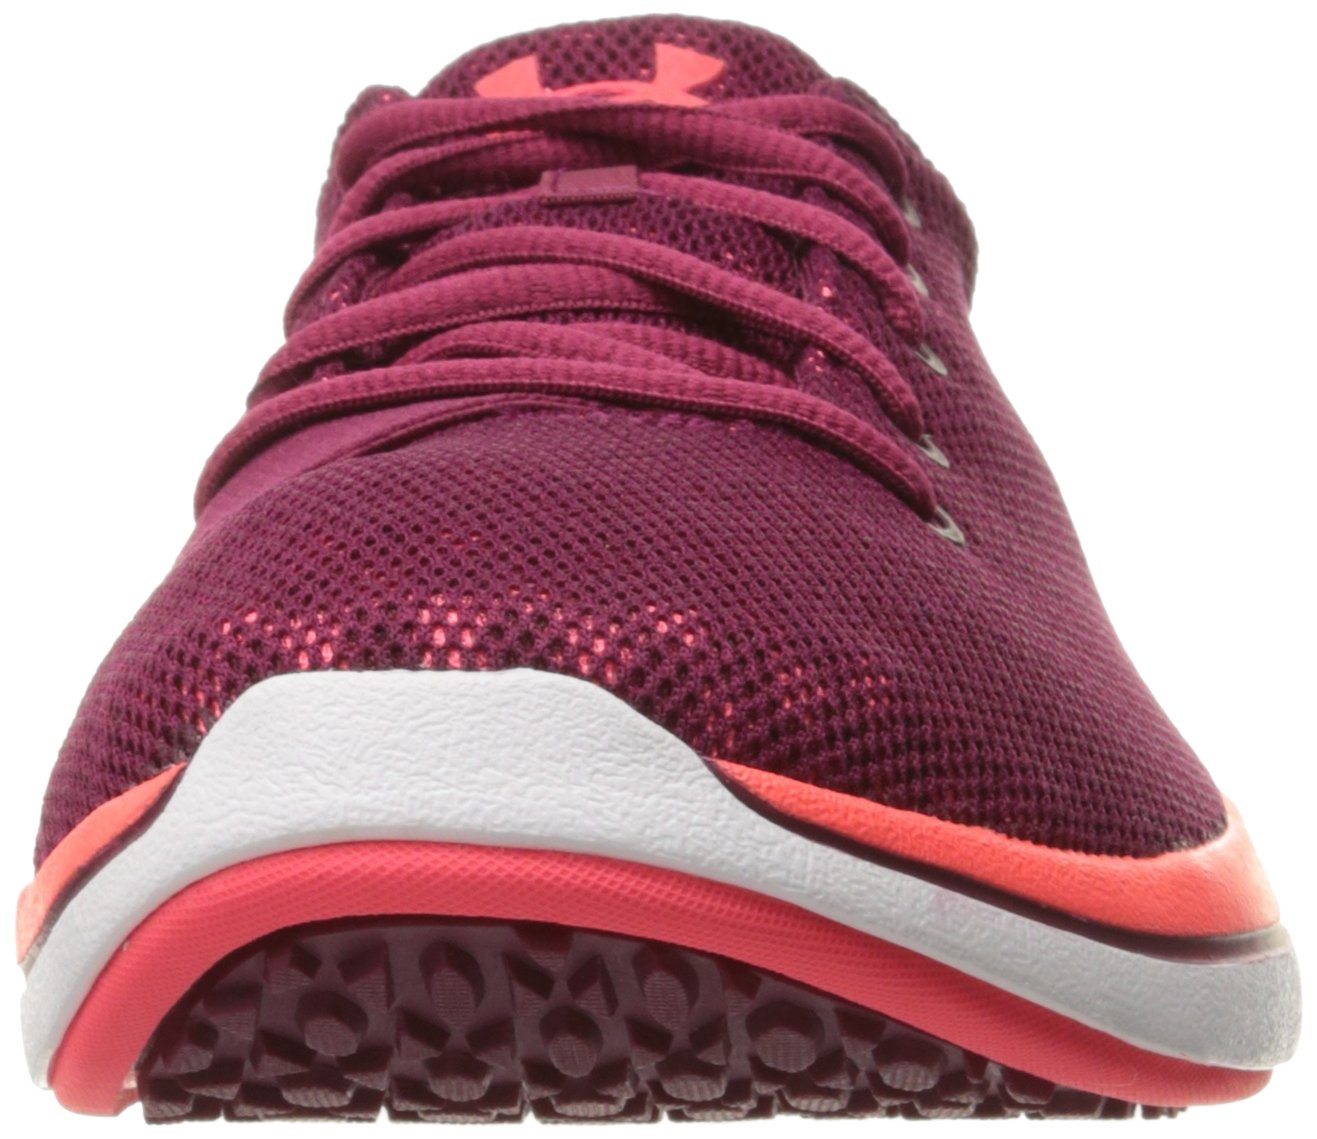 Under Armour Women's Rotation M Cross-Trainer Shoe B01NBVSZW5 7 M Rotation US|Blue 8f3a6a